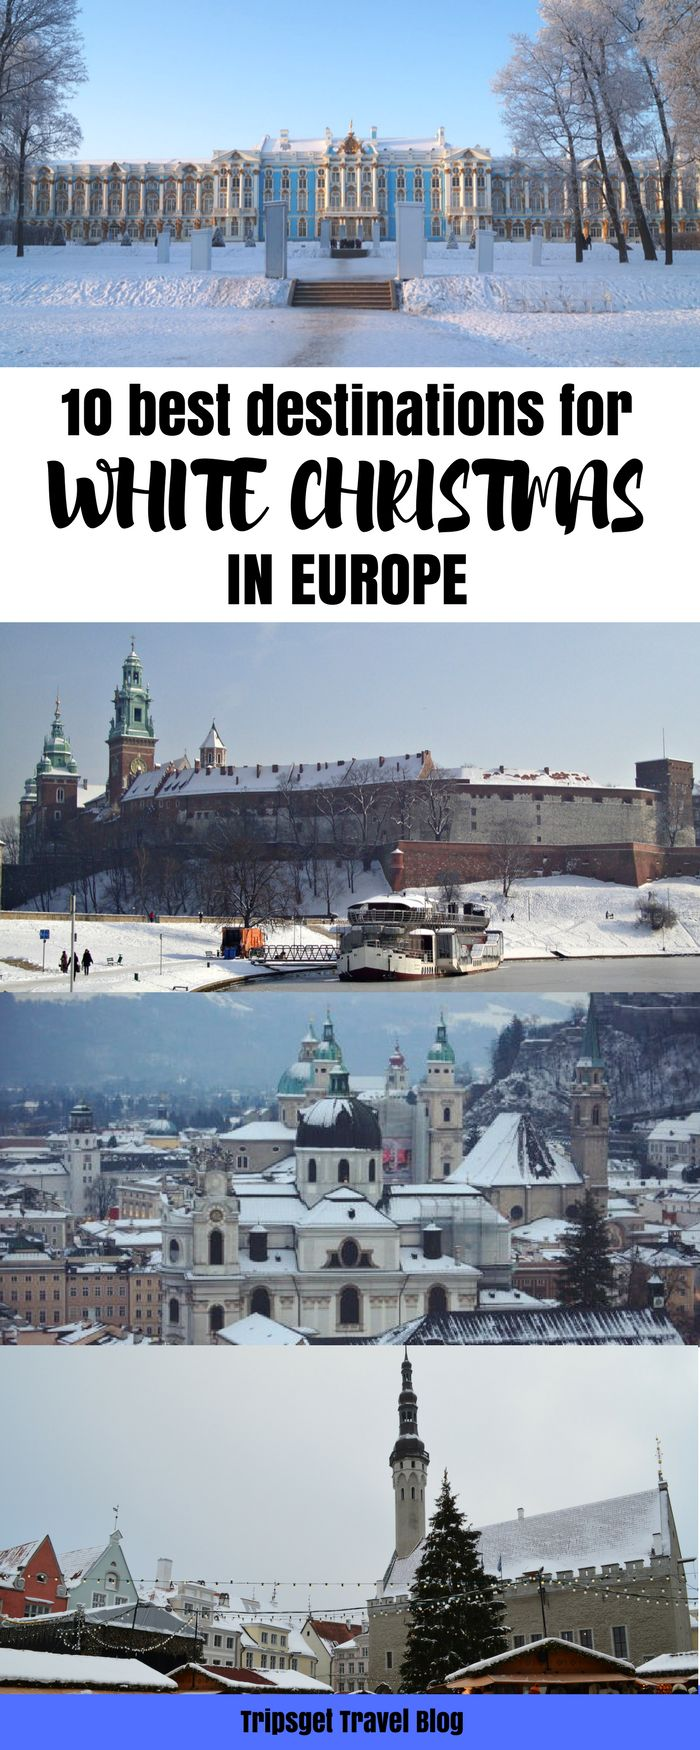 10 destinations in Europe for white Christmas. Where to go for Christmas in Europe. Moscow, Tallinn, St. Petersburg, Lapland, Stockholm, Riga